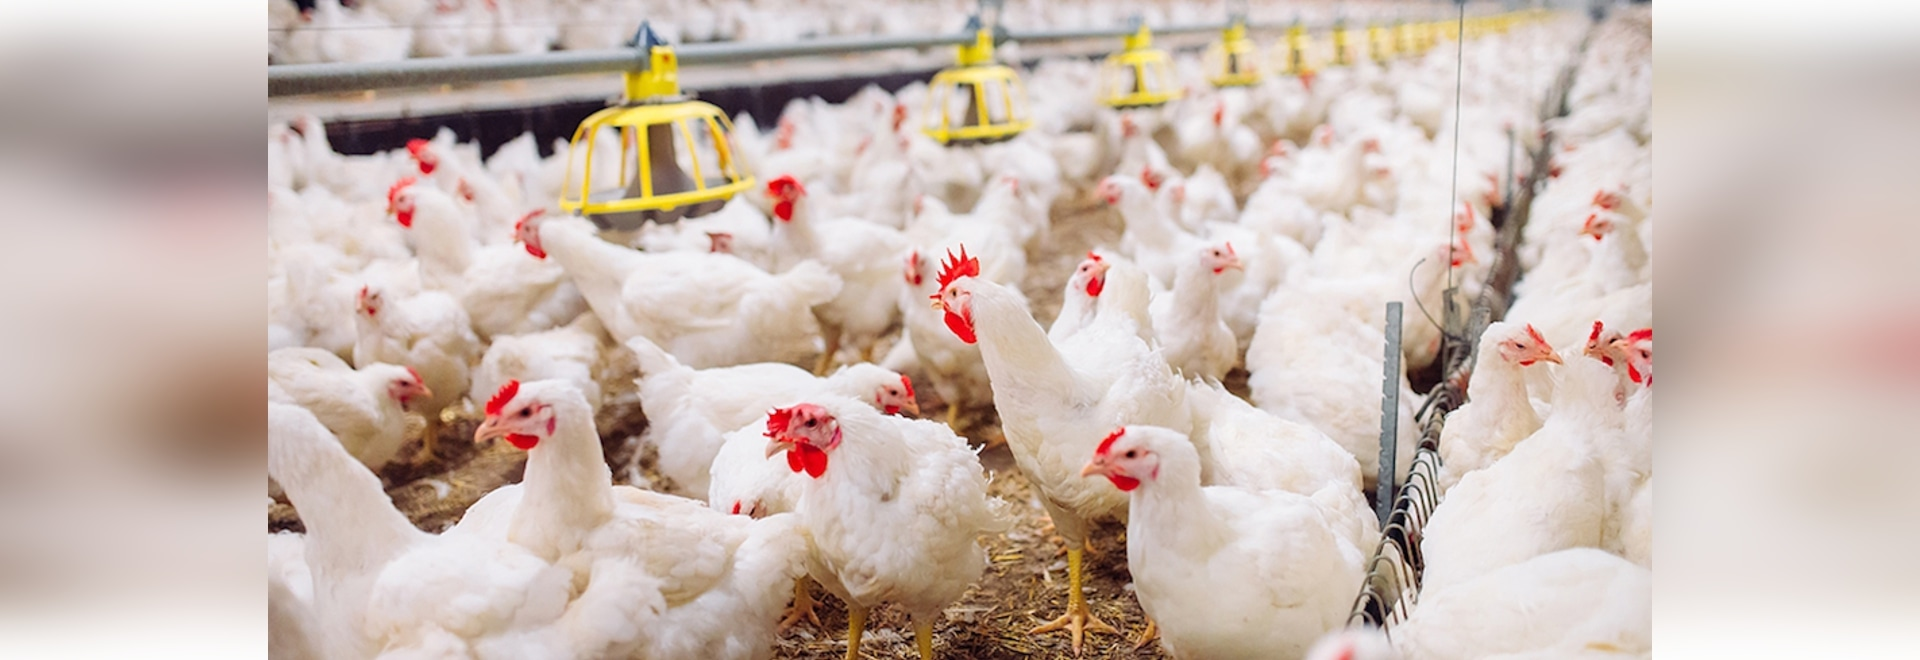 Poultry farm sector trends